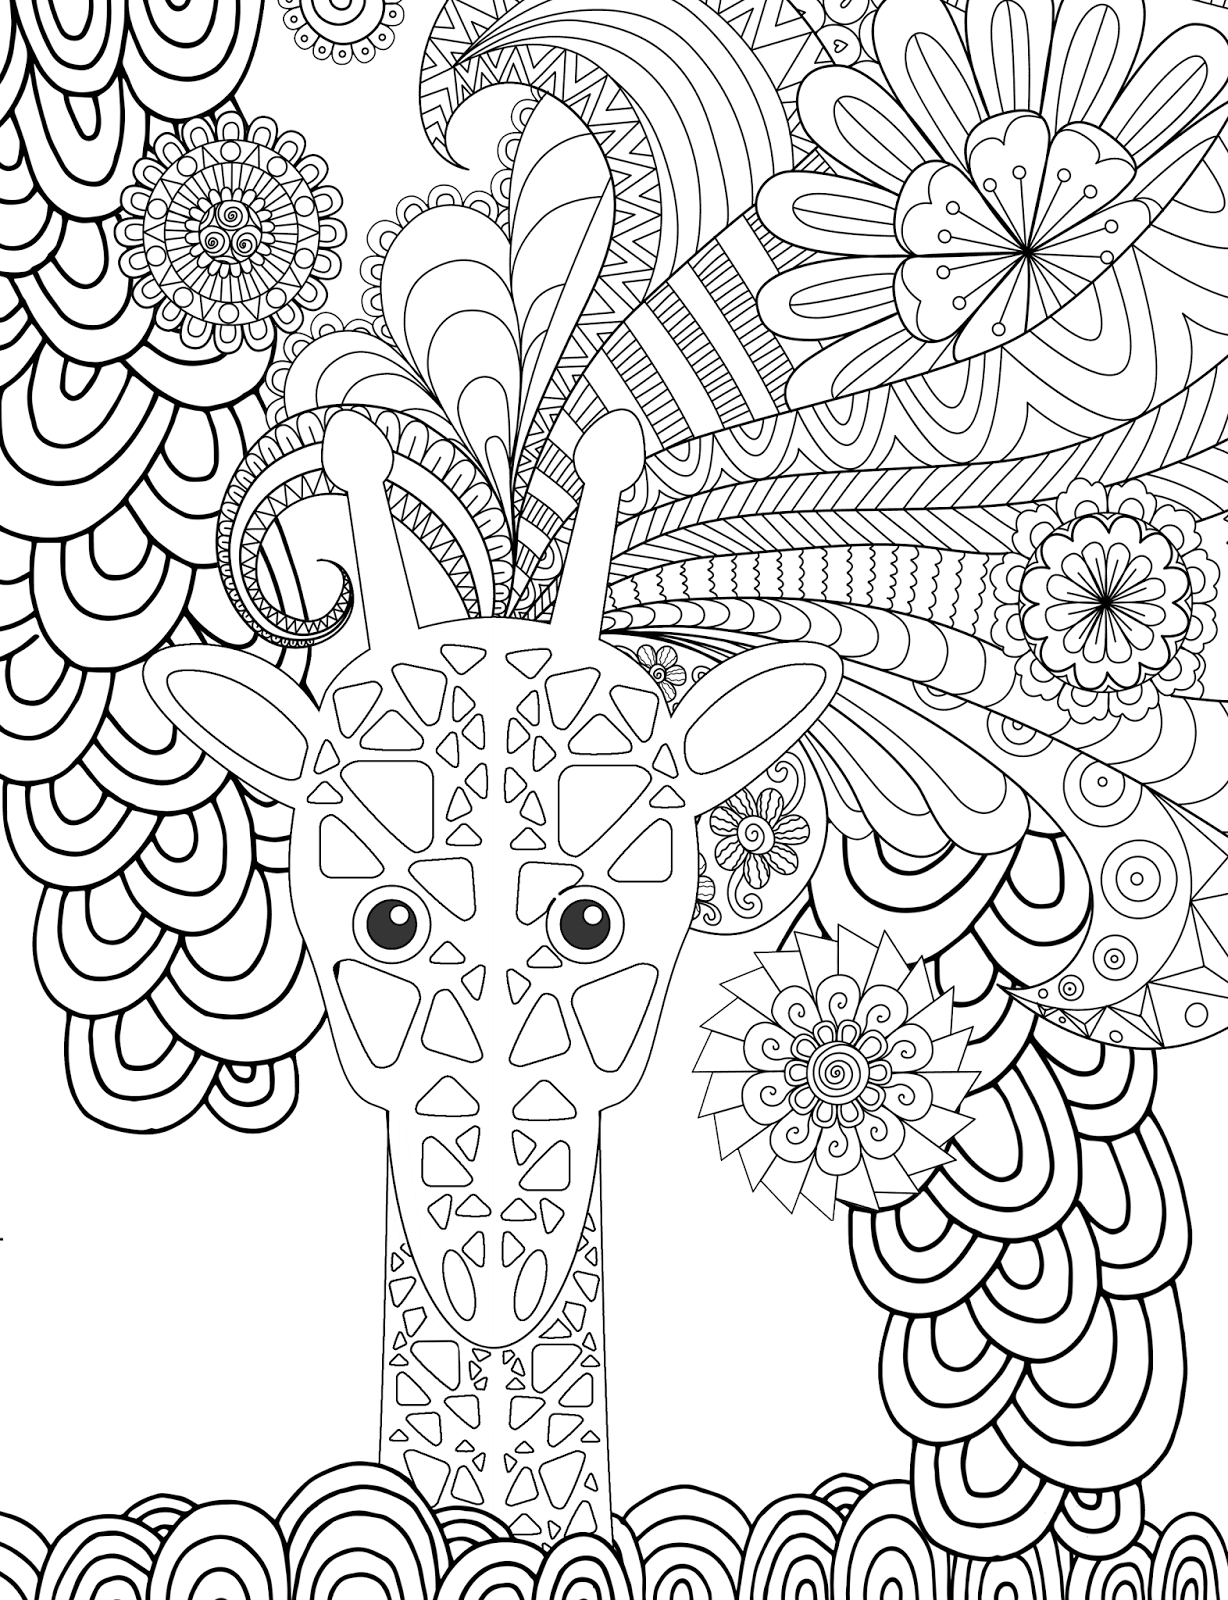 Coloring pages for adults giraffe - Here Is An Animal Adult Coloring Page To Print For Free